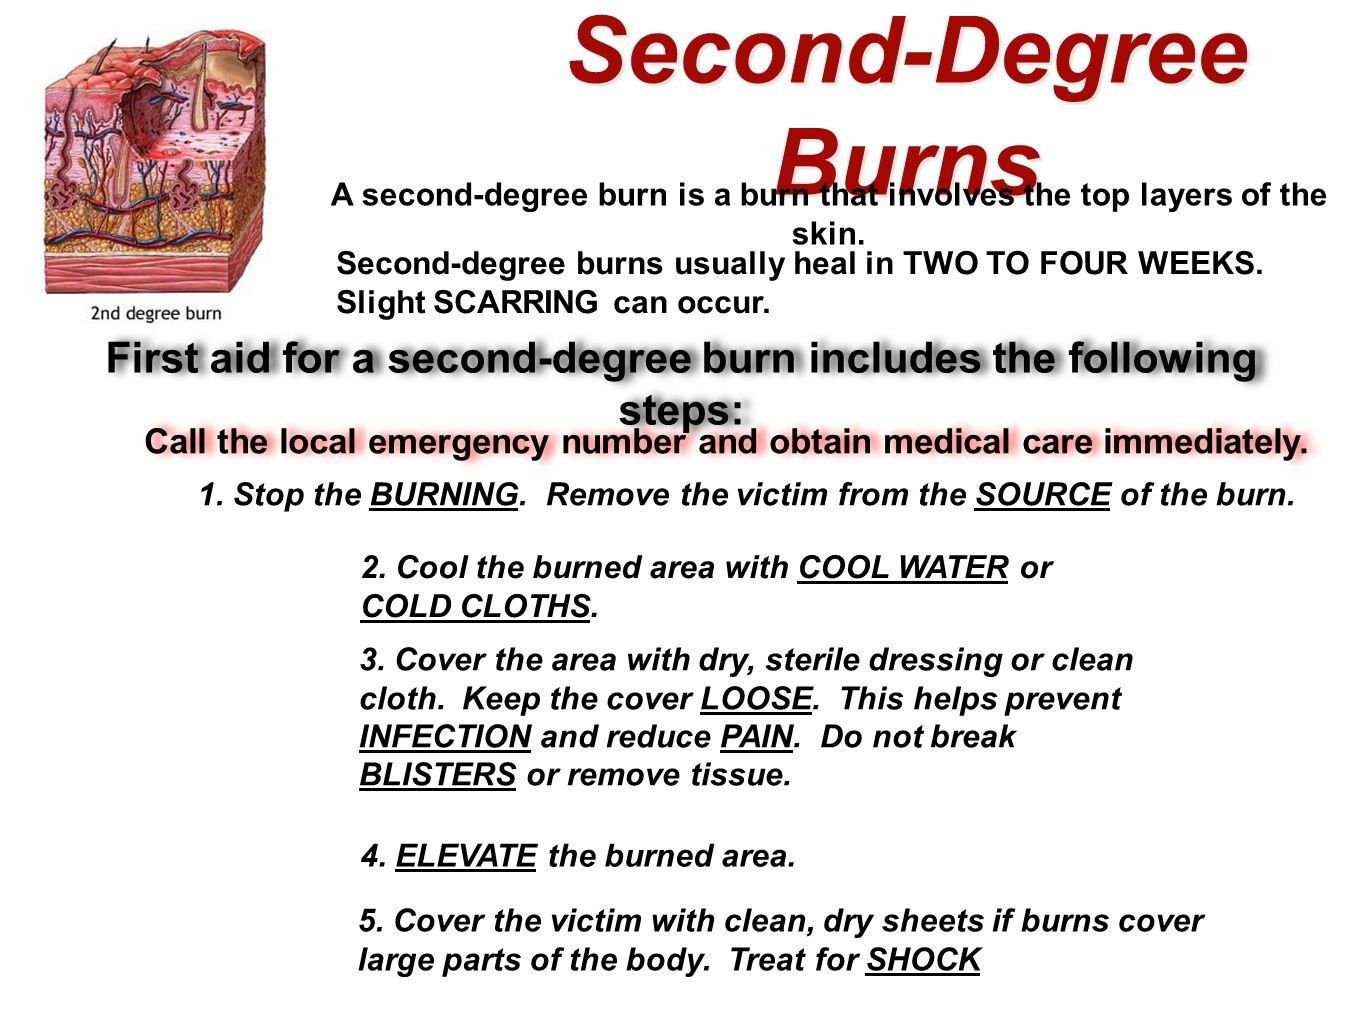 Second-Degree Burns A second-degree burn is a burn that involves the top layers of the skin. Second-degree burns usually heal in TWO TO FOUR WEEKS. Sl